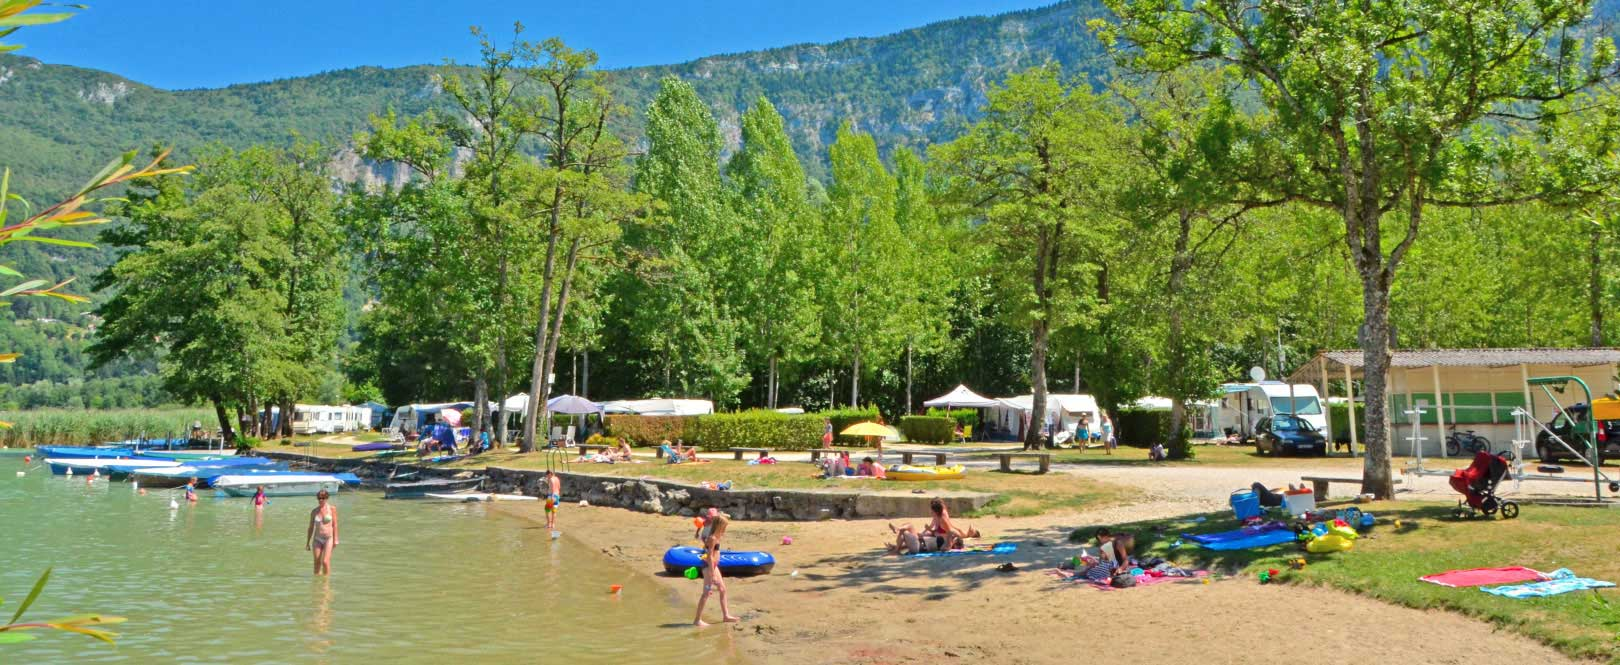 Camping avec piscine et lac rhone alpes for Camping avranches avec piscine